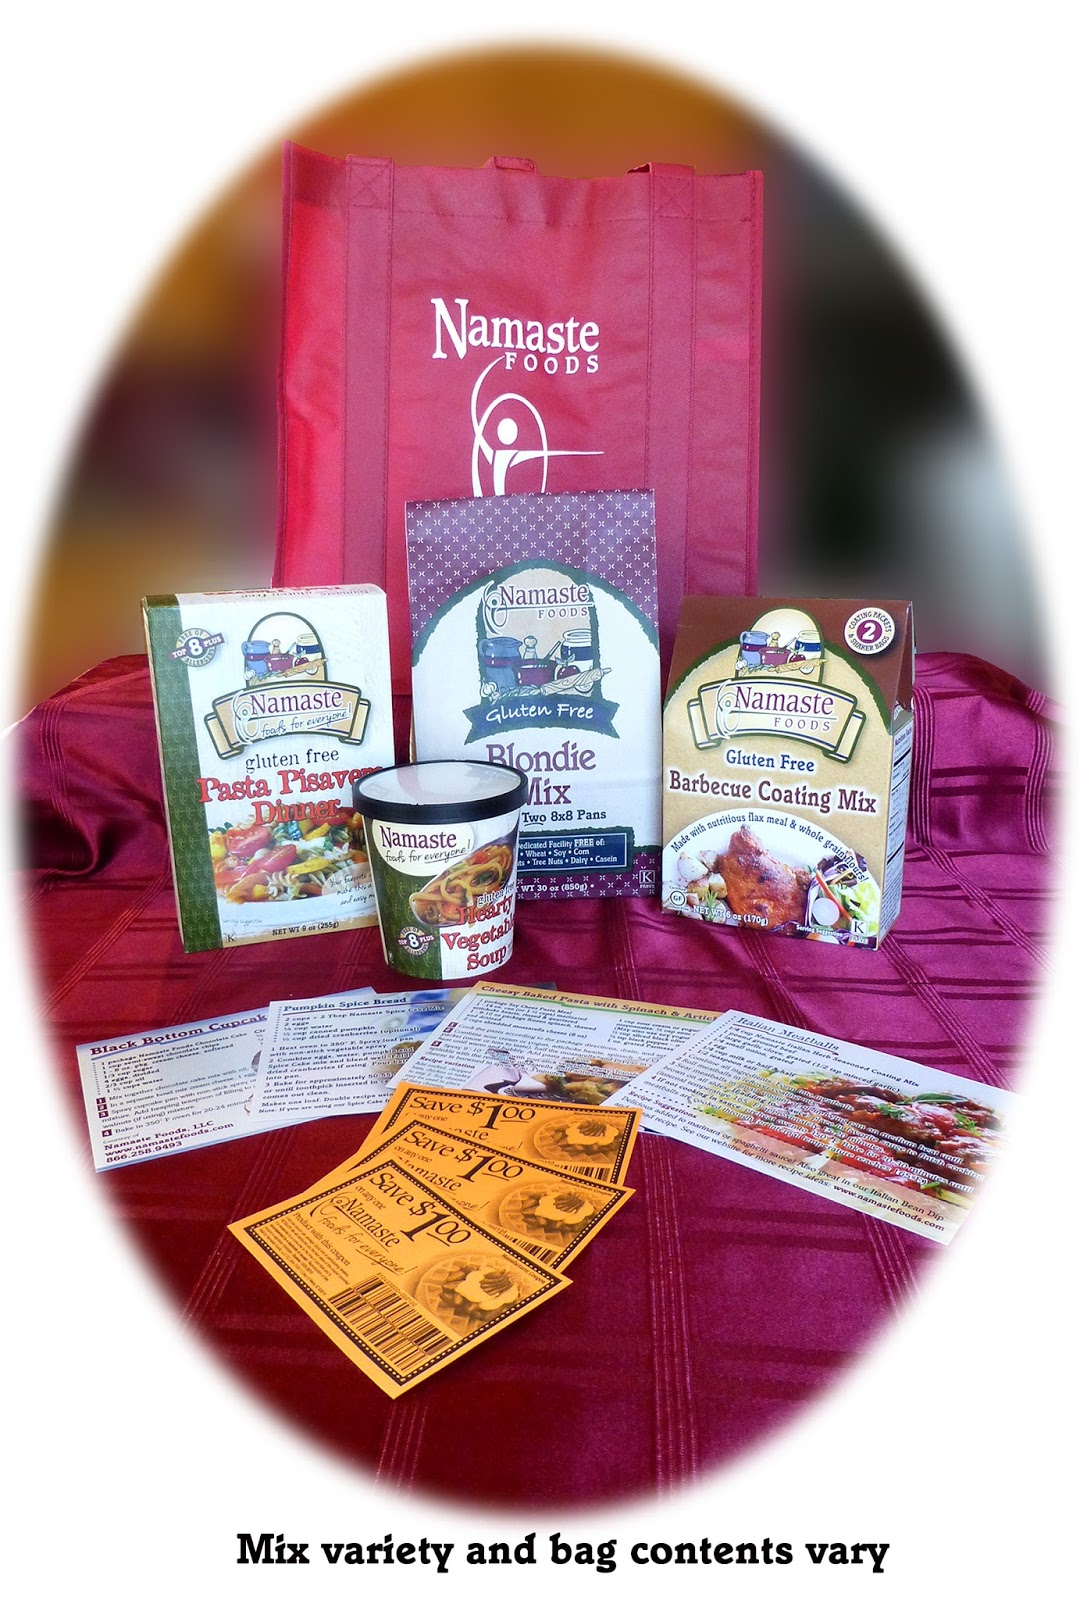 The traveling sisterhood namaste baking mixes giveaway glutenfree you can win this gift bag from namaste foods enter below by 103 at midnight eastern time check out our other giveaways too we have a lot of goodies negle Gallery